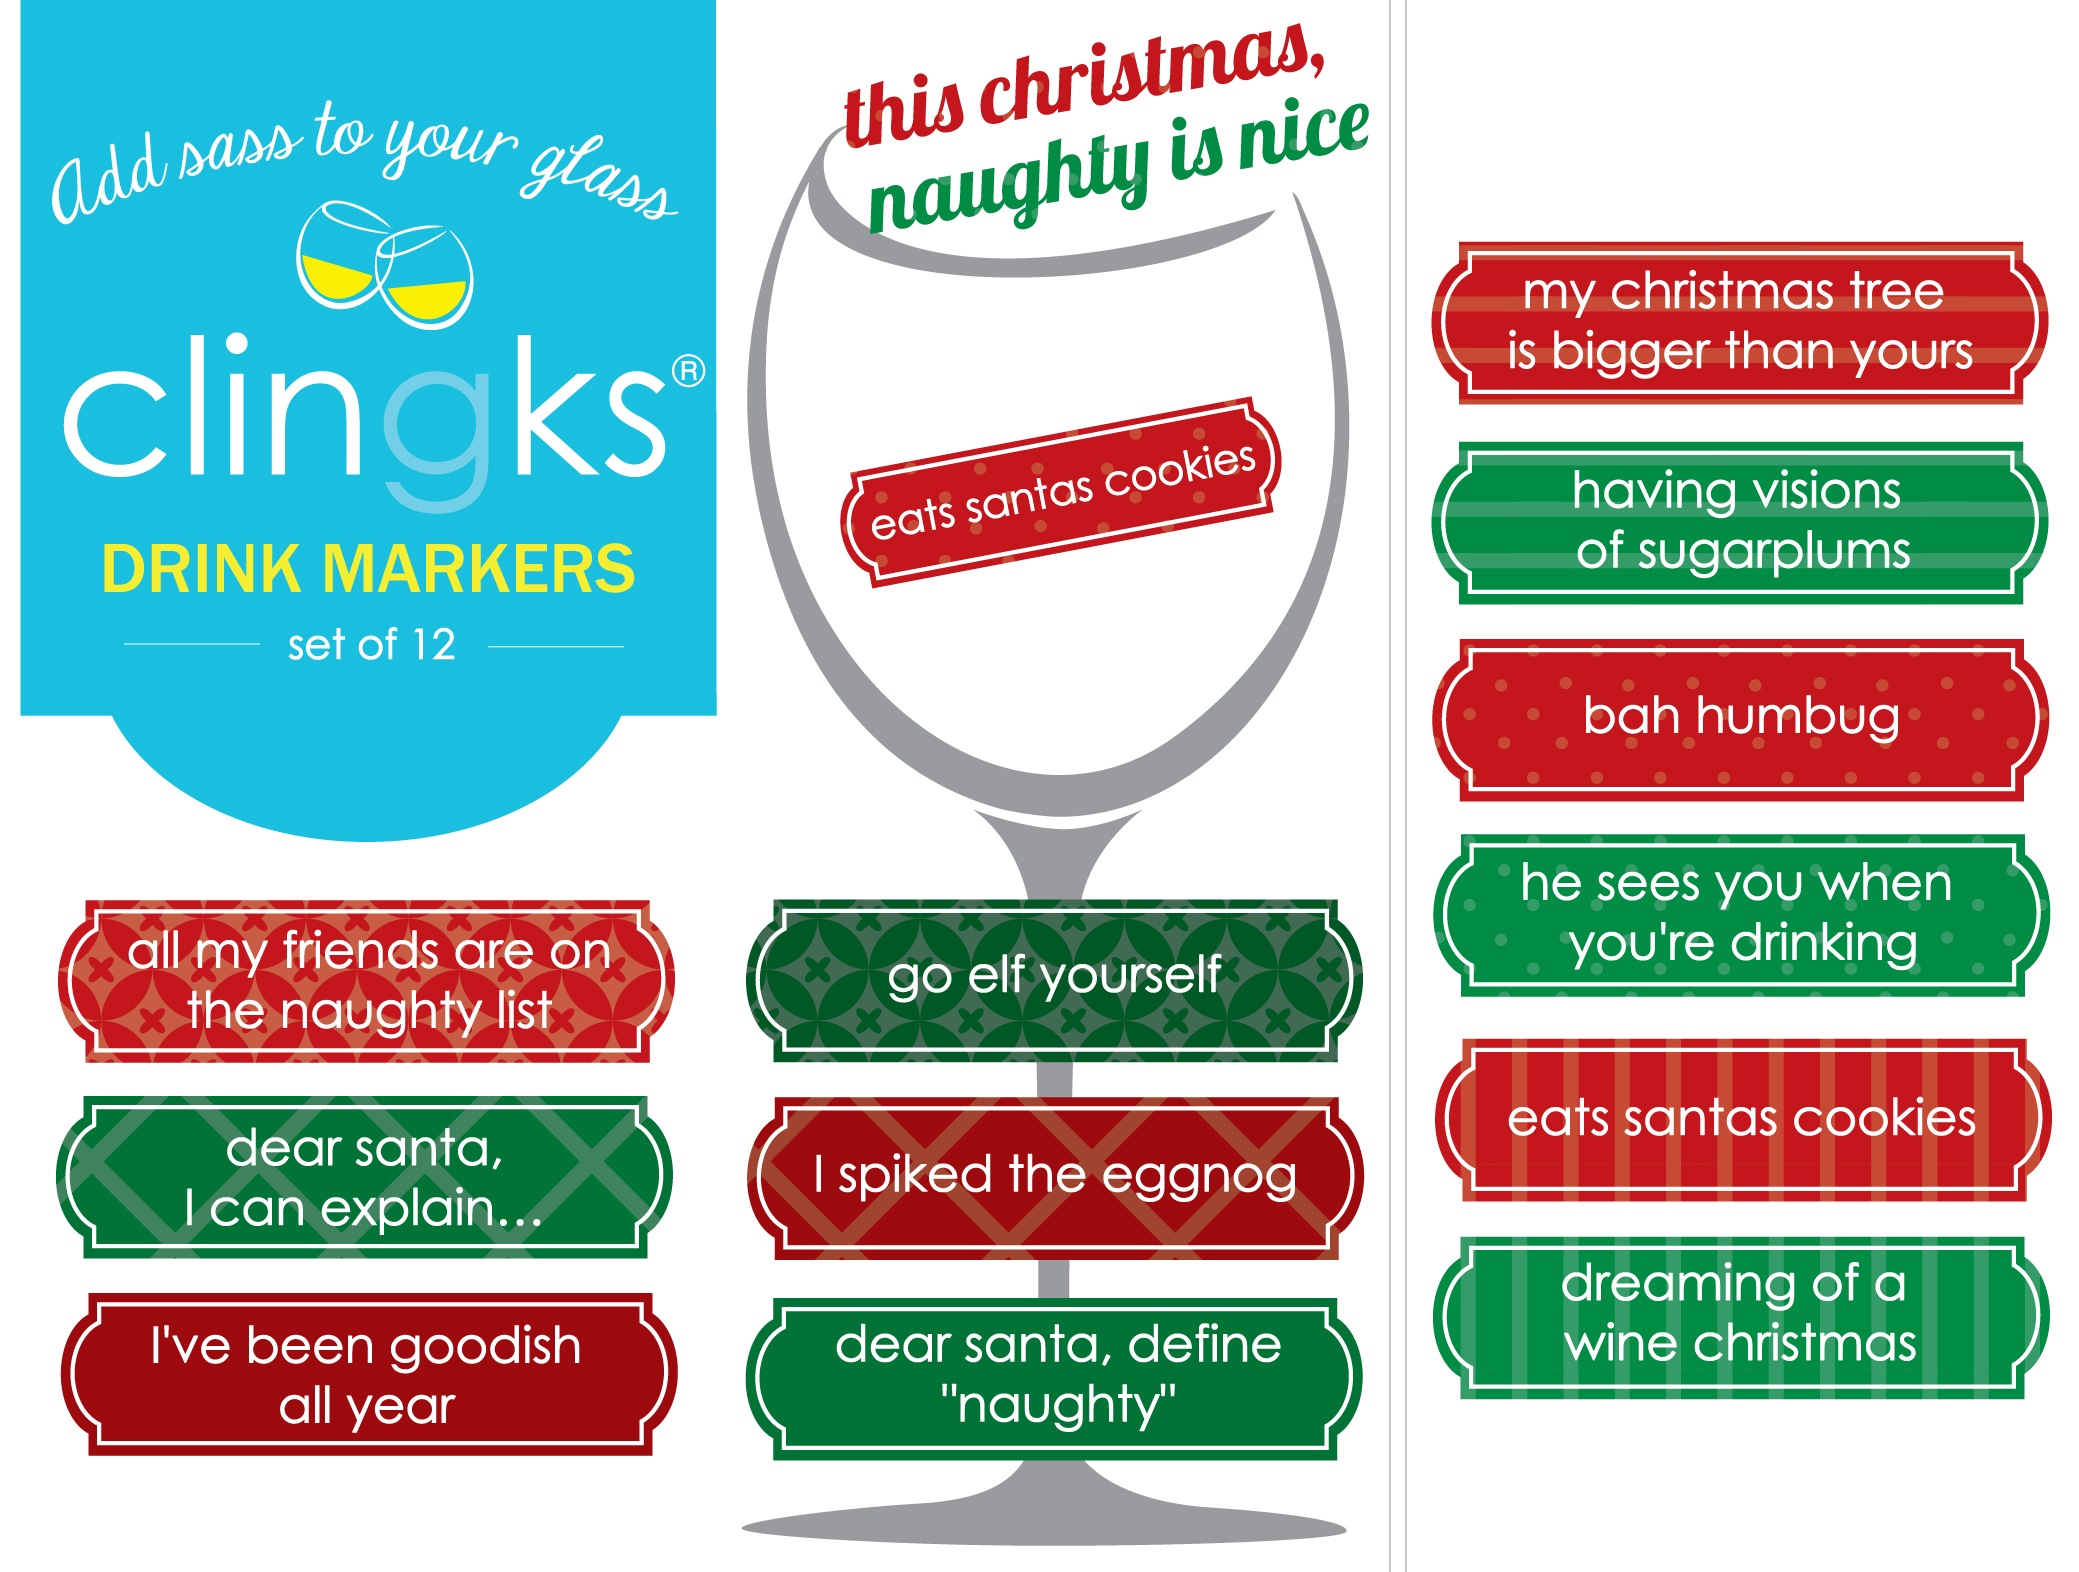 Clingks Drink Markers - Happy Hour